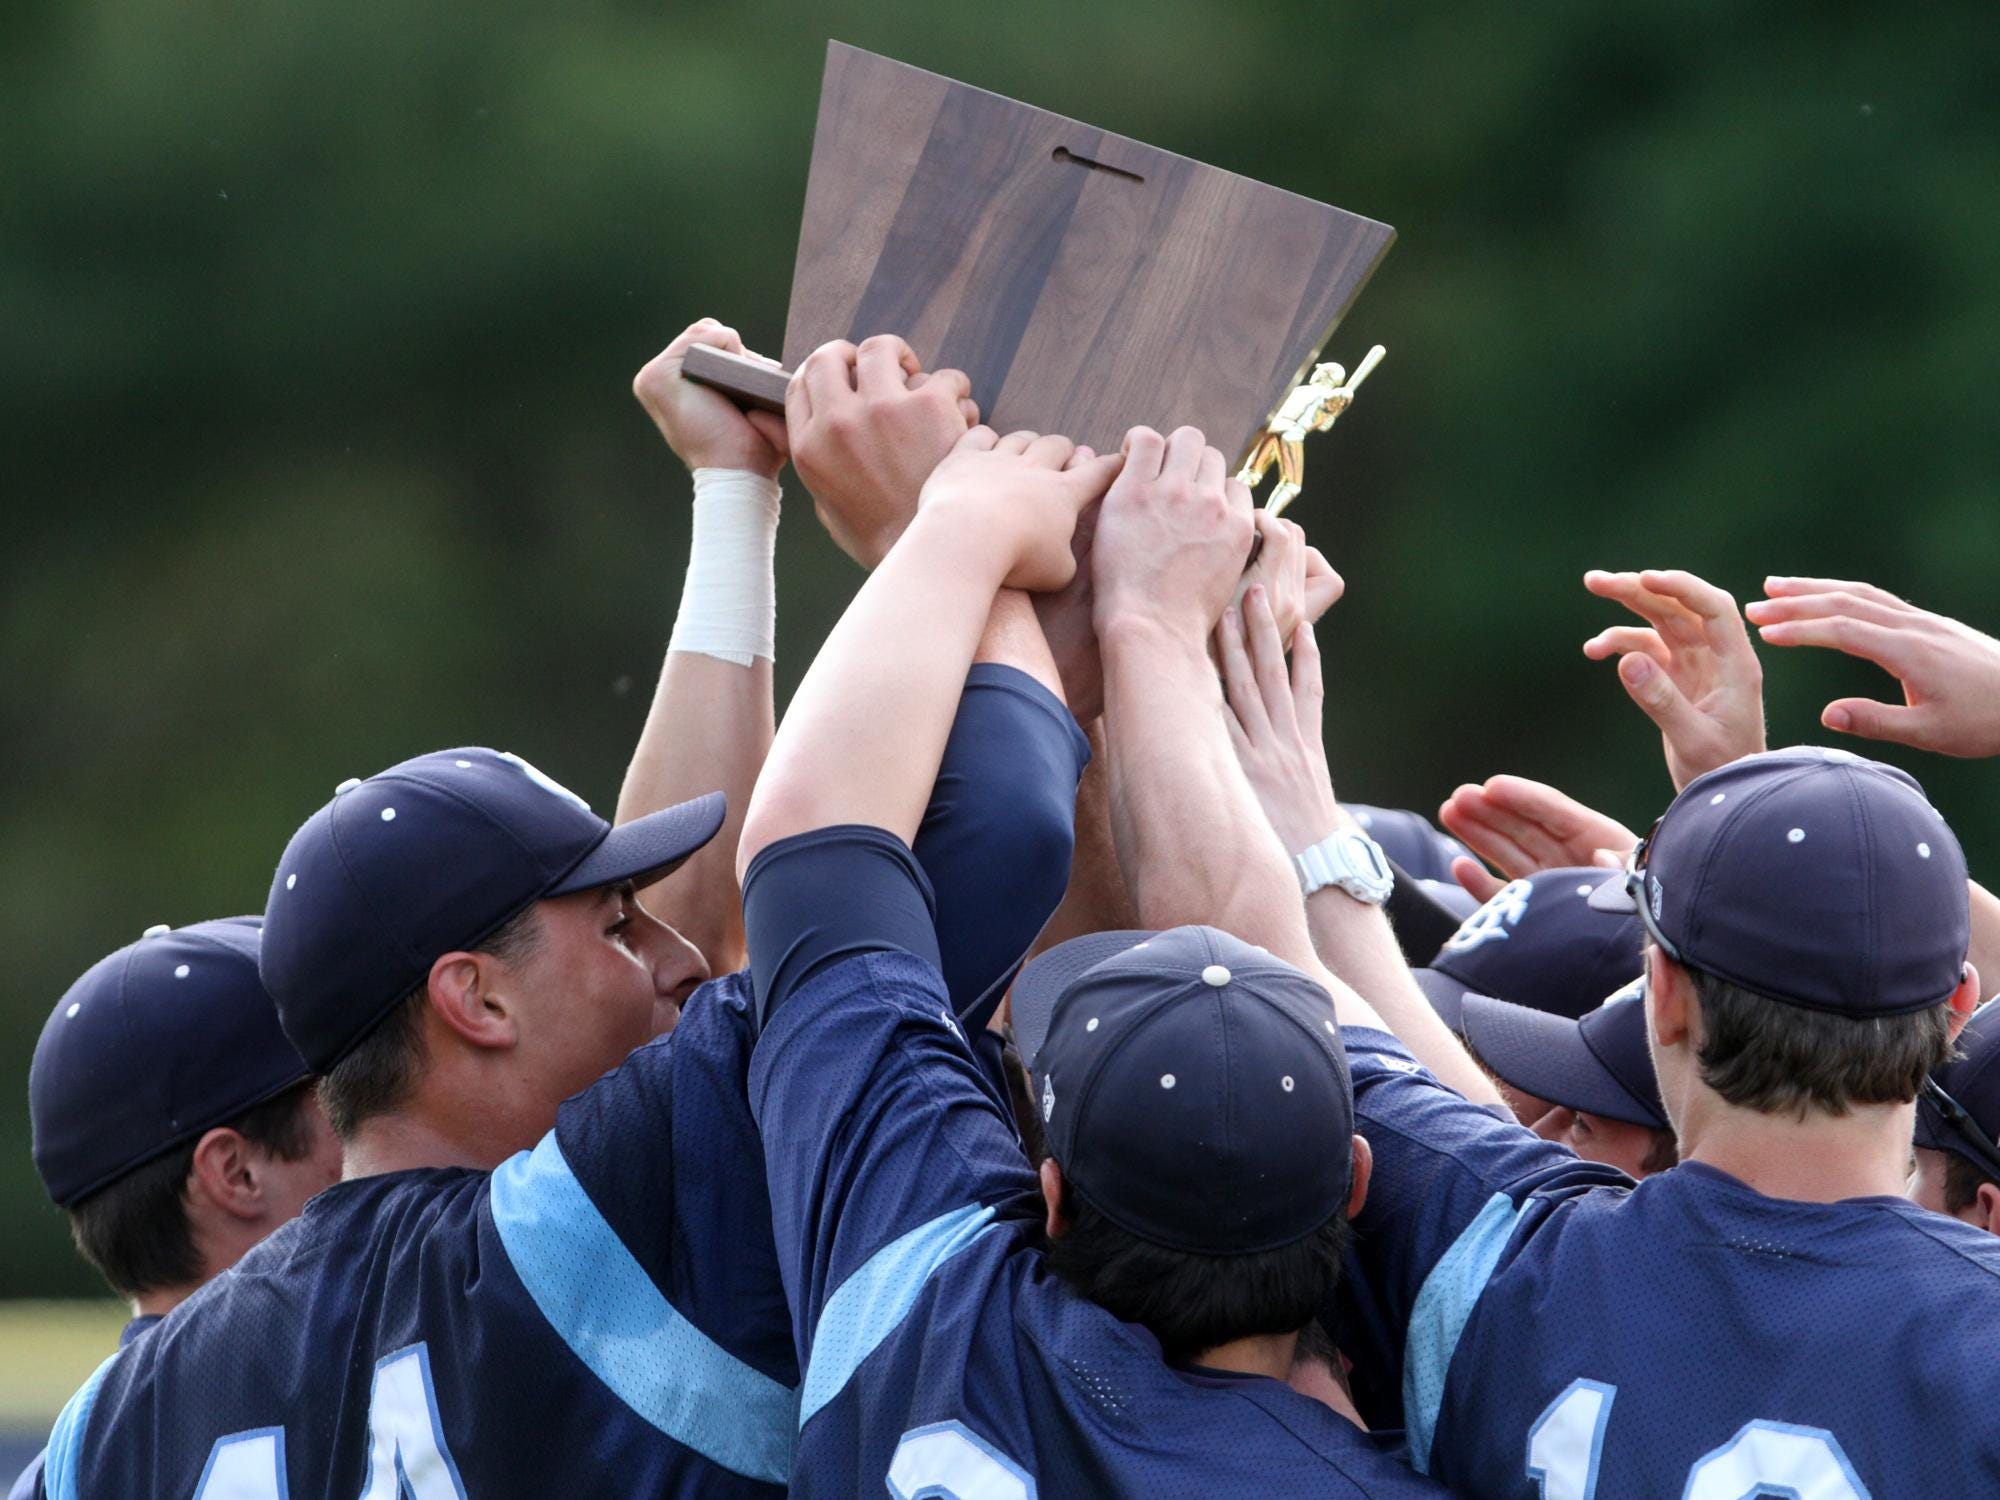 Christian Brothers Academy's baseball players, shown celebrating after the 2-0 win over Bishop Eustace Wednesday in the NJSIAA Non-Public South A championship game, hopes to be celebrating a Non-Public A state championship win over Don Bosco Prep Saturday